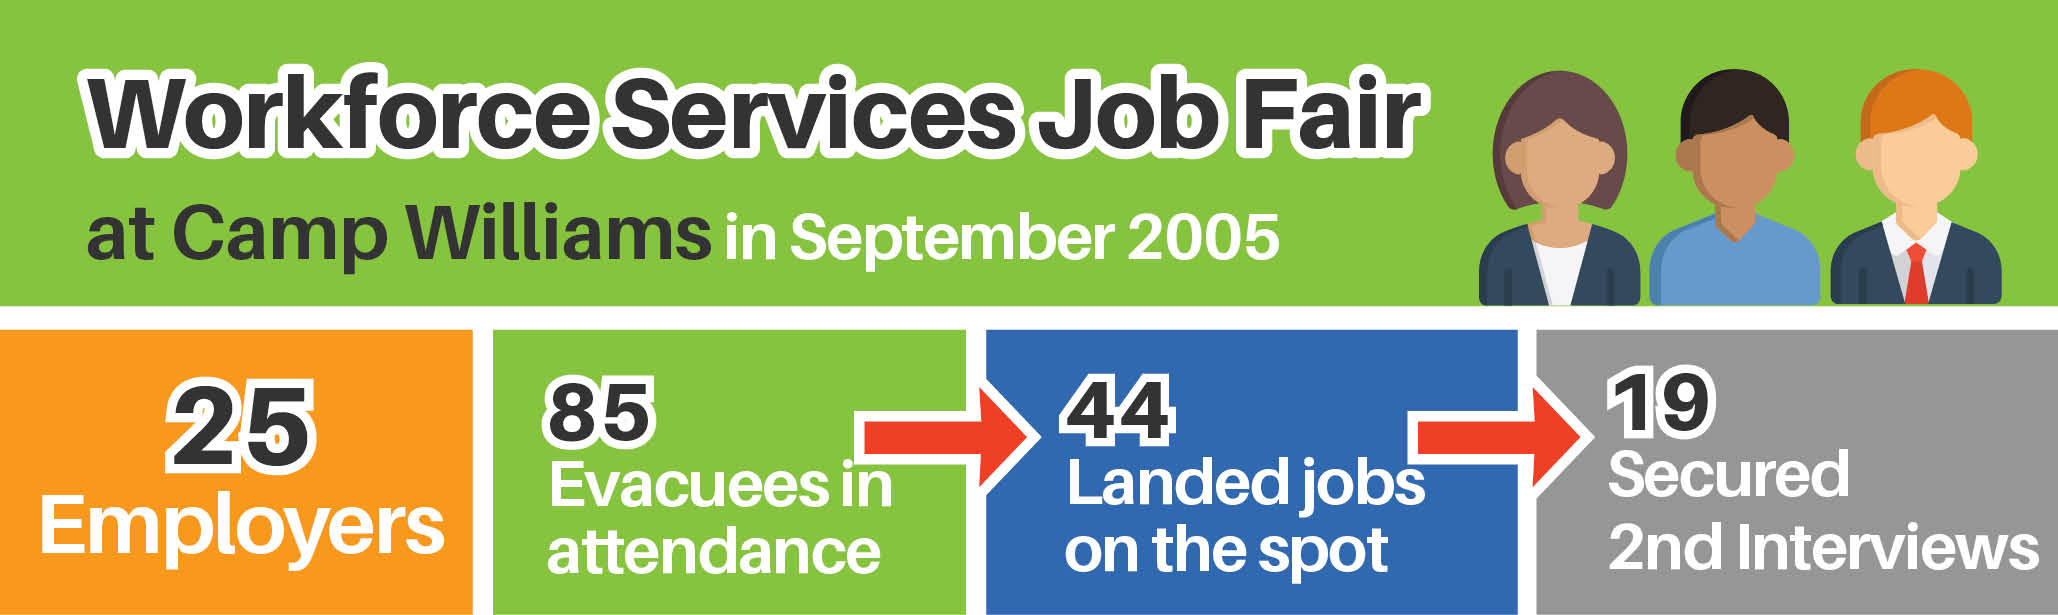 Workforce Services job fair at camp williams in September 2005. 25 employers. 85 evacuees. 44 landed jobs. 19 secured 2nd interviews.